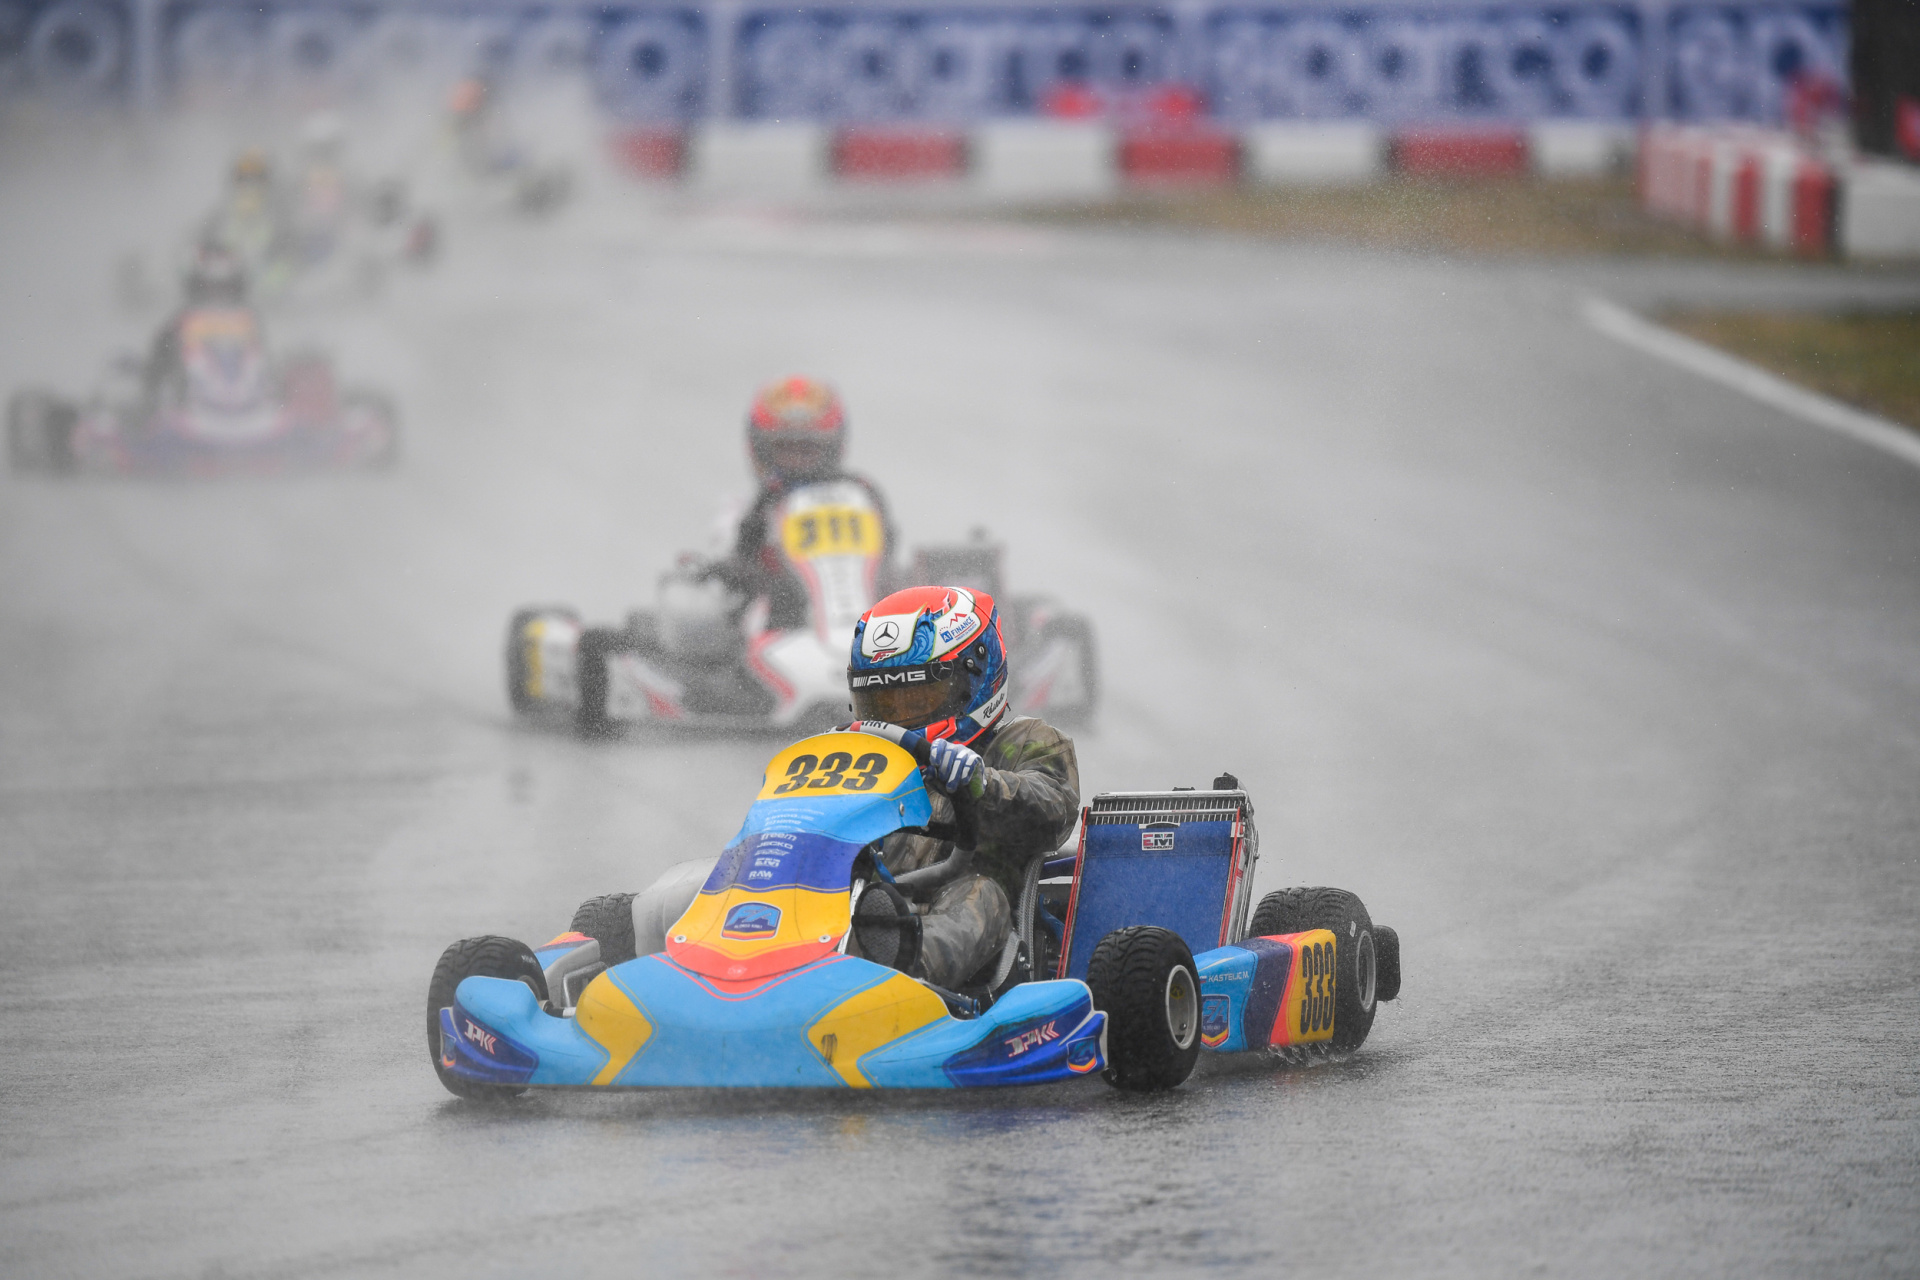 Mark Kastelic affected by weather on Sunday in Lonato